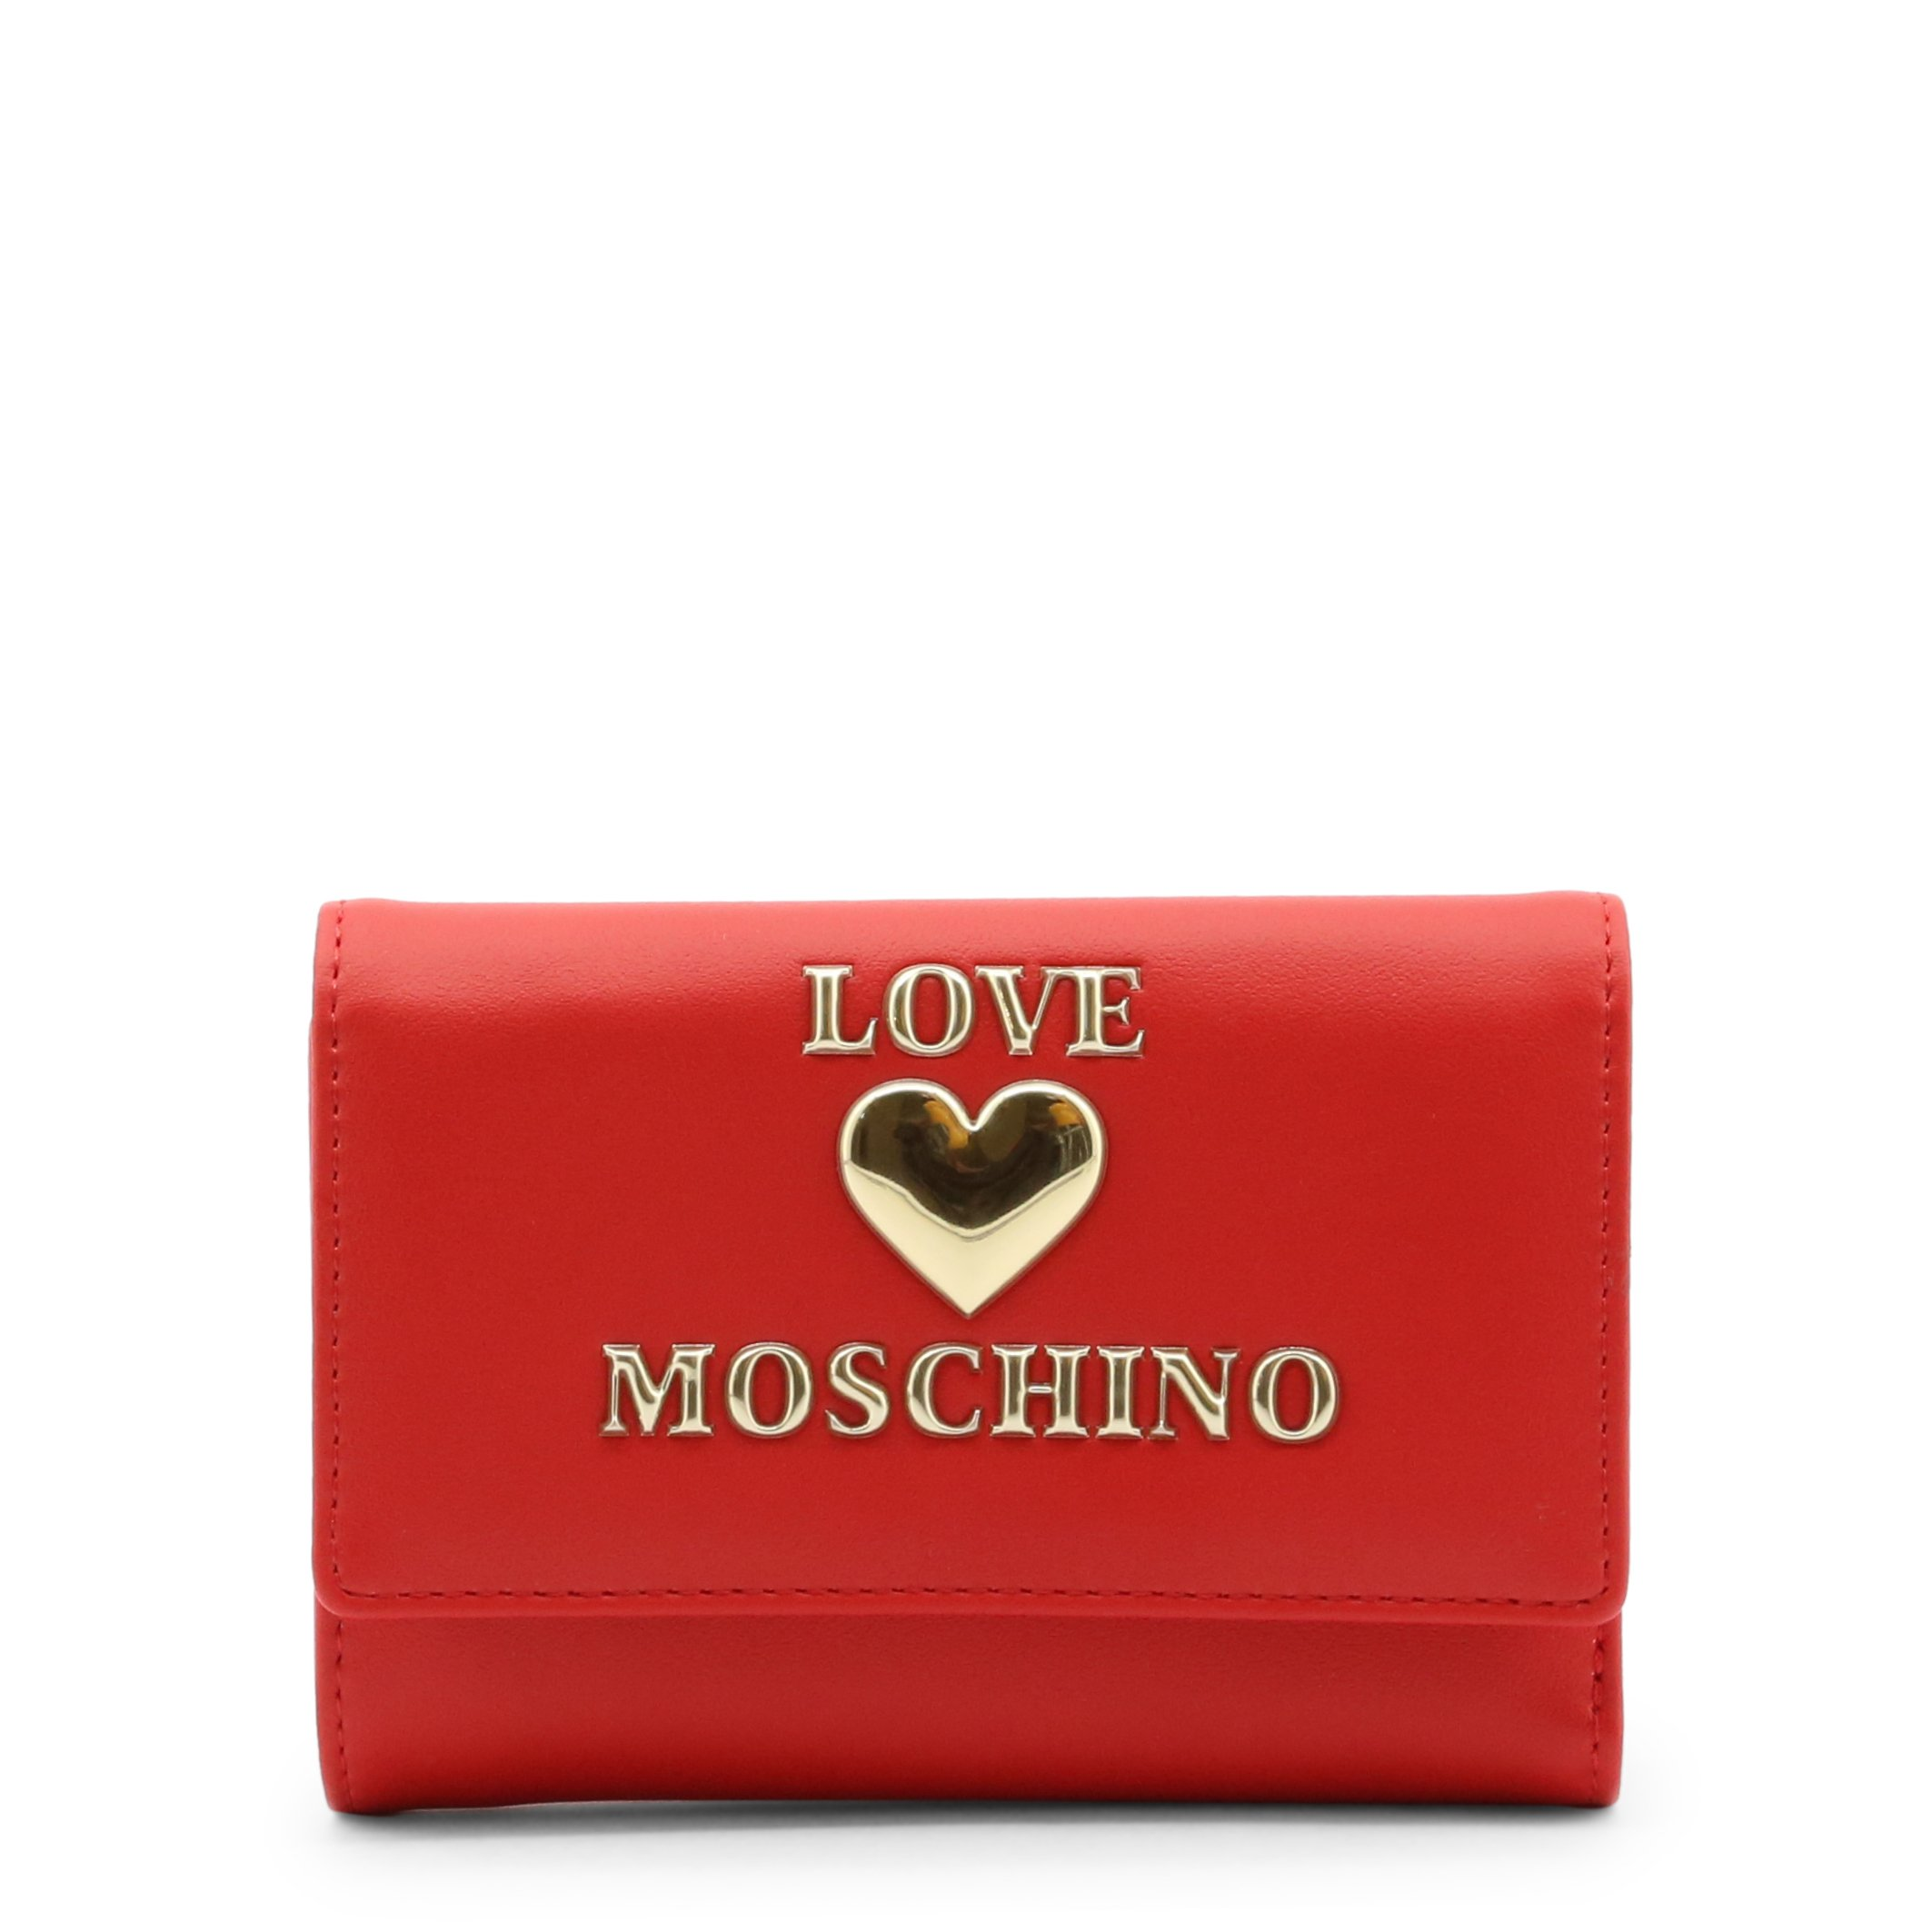 Love Moschino Women's Wallet Various Colours JC5639PP1DLF0 - red NOSIZE